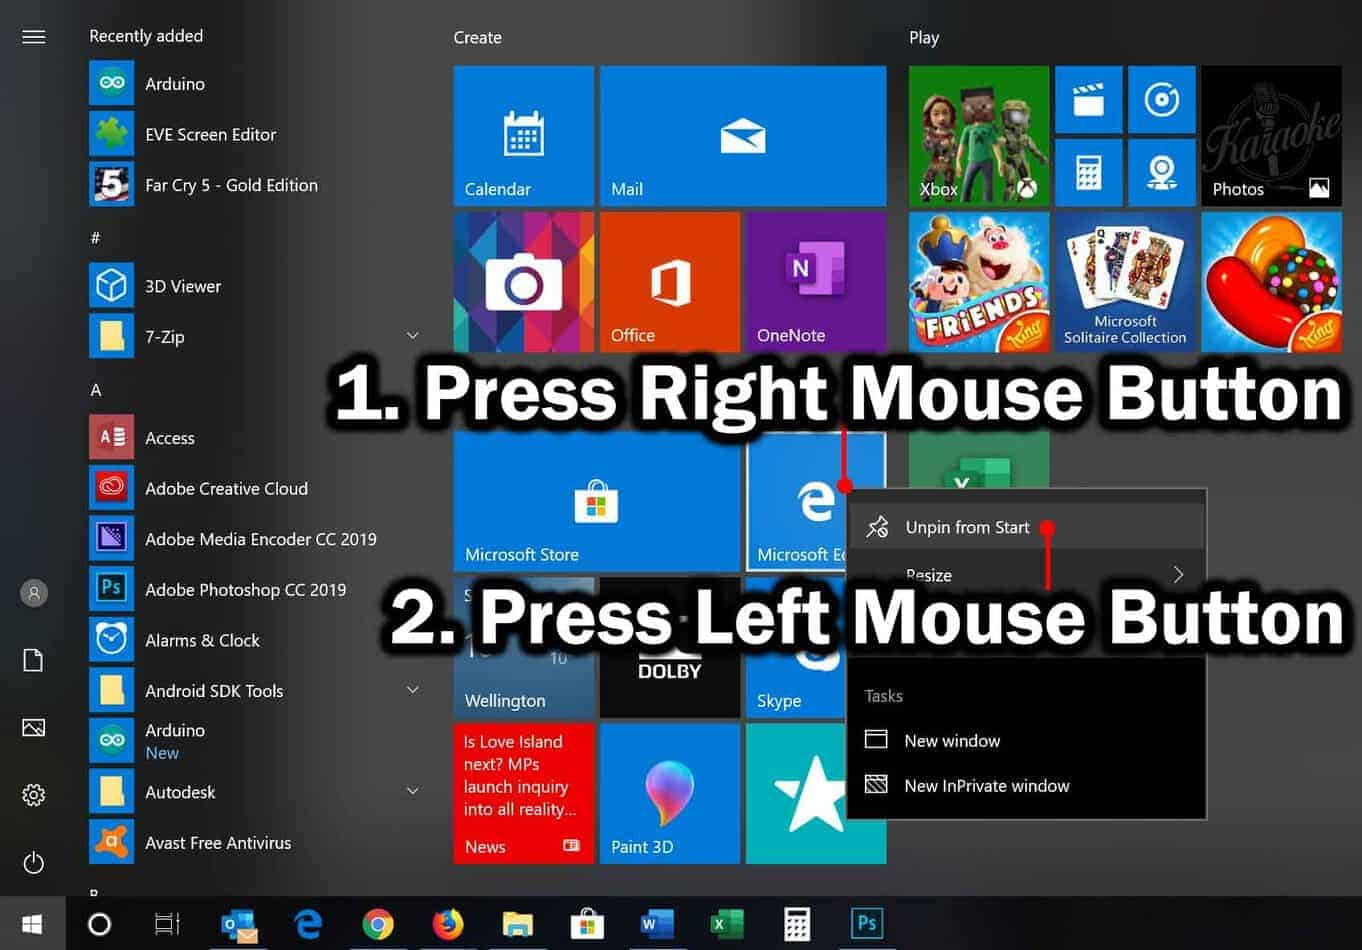 unpin item from start menu